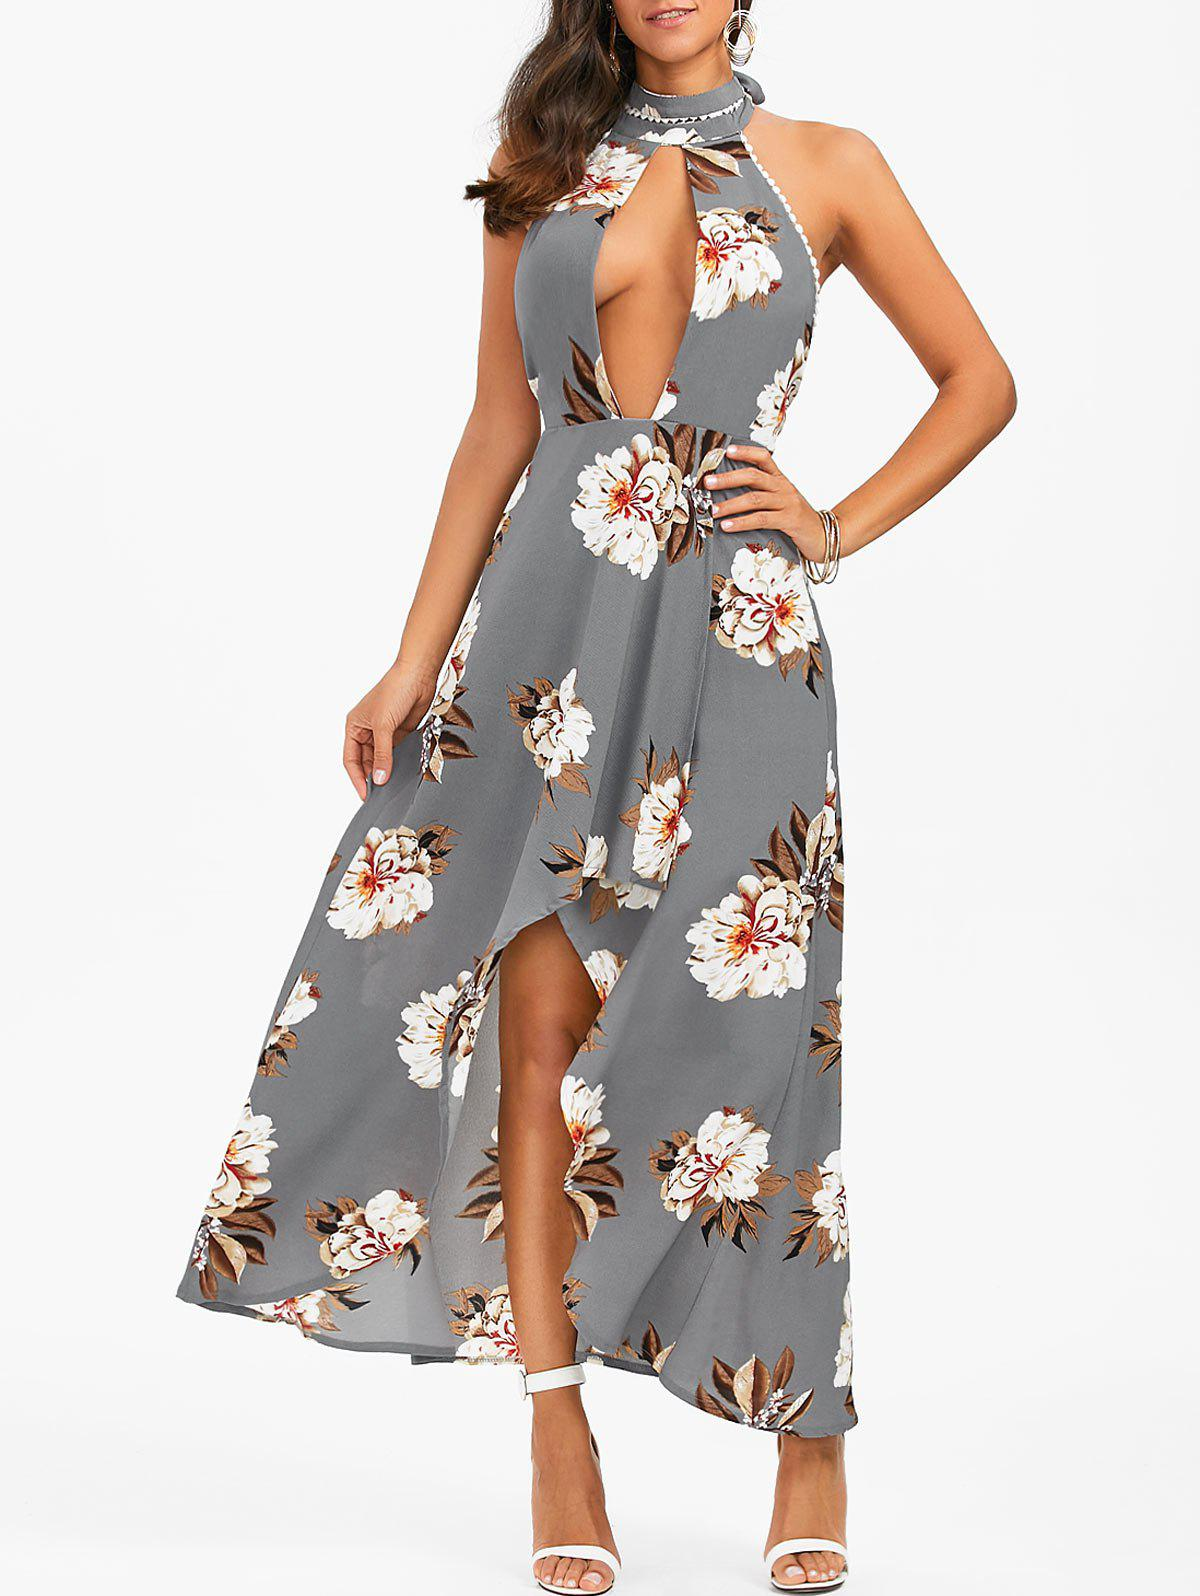 Outfit Halter Backless Floral Print Boho Swing Casual Maxi Dress